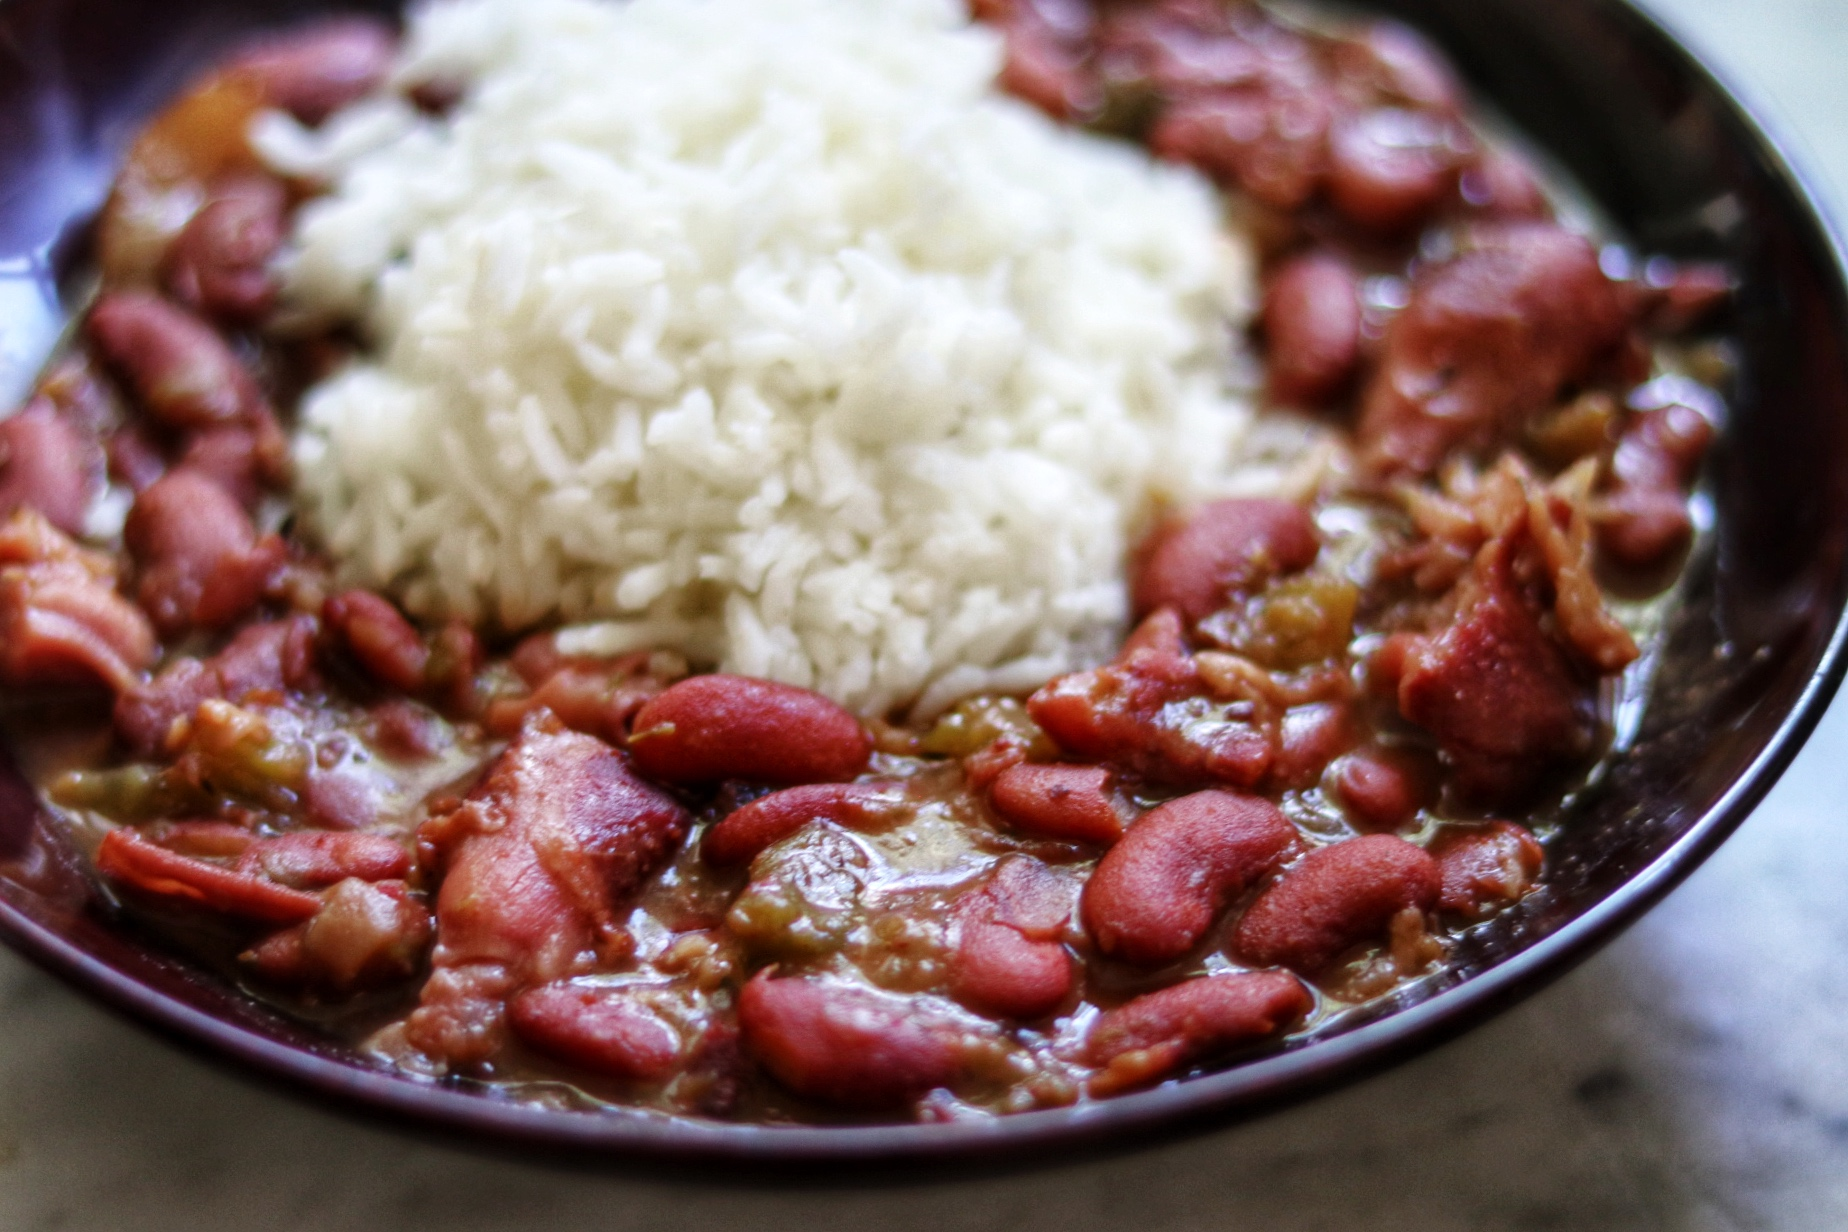 """Diana71 shares this family recipe, saying, """"This pressure cooker recipe has been converted from a family recipe that we've used for 40+ years. Our family had come across it while in New Orleans when I was a little girl. From what I remember, red beans and rice were always made at home on Mondays using leftover pork bones from the weekend meals. It's deliciously flavorful and can be made as spicy as you'd like. I hope you love it as much as my own family does."""" Reviewers agree, awarding it solid 5-star ratings."""